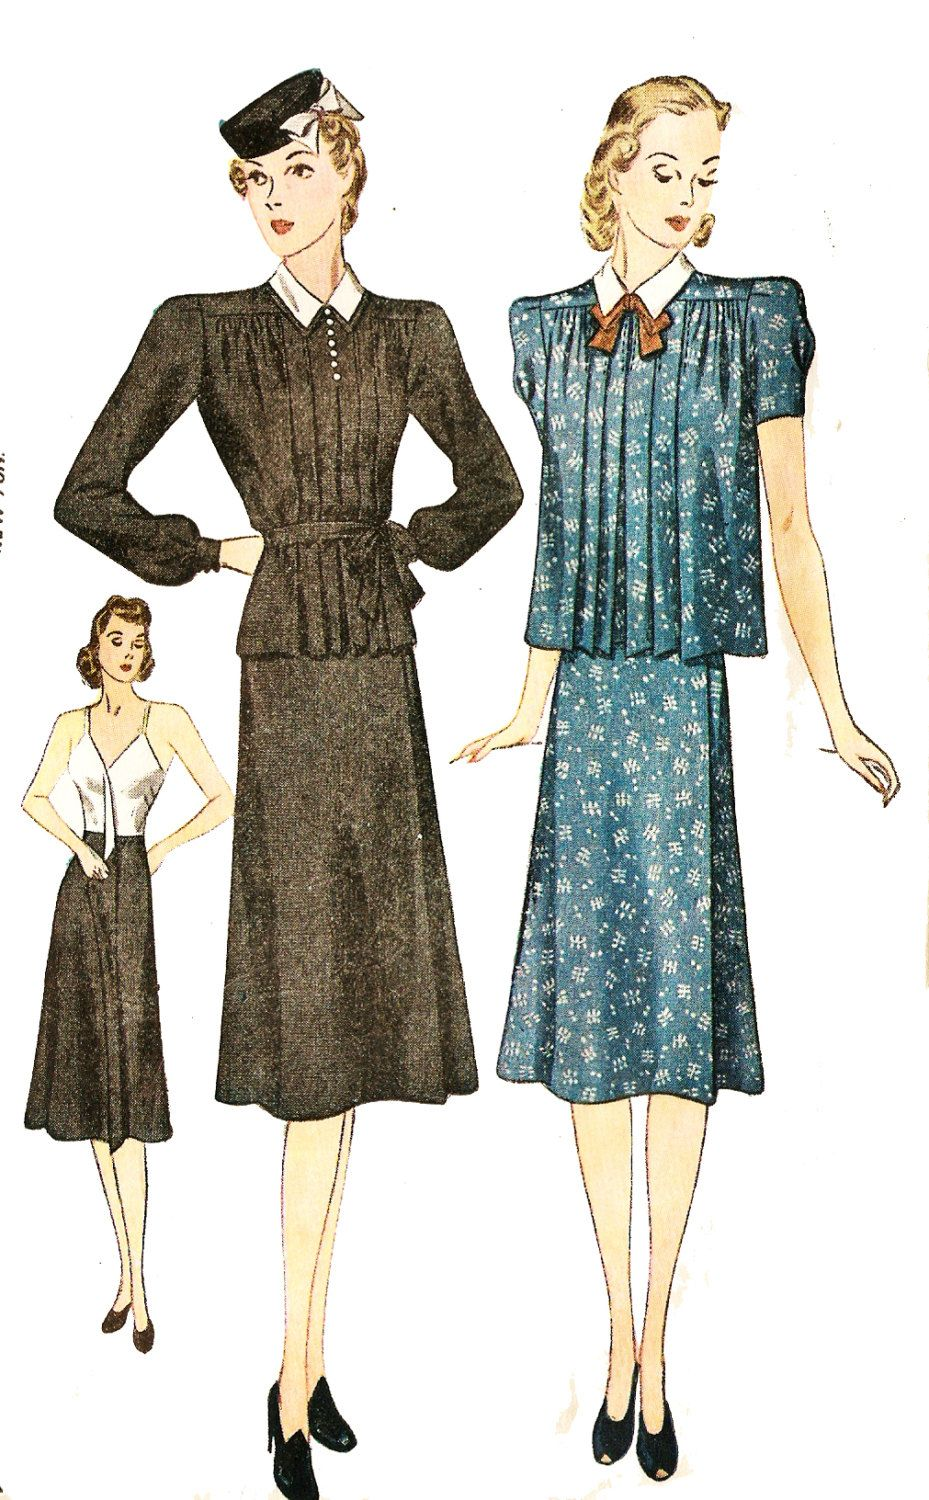 d1e728f09f073 Simplicity 3153 Misses' Vintage 1930s Two Piece Maternity Dress Sewing  Pattern…